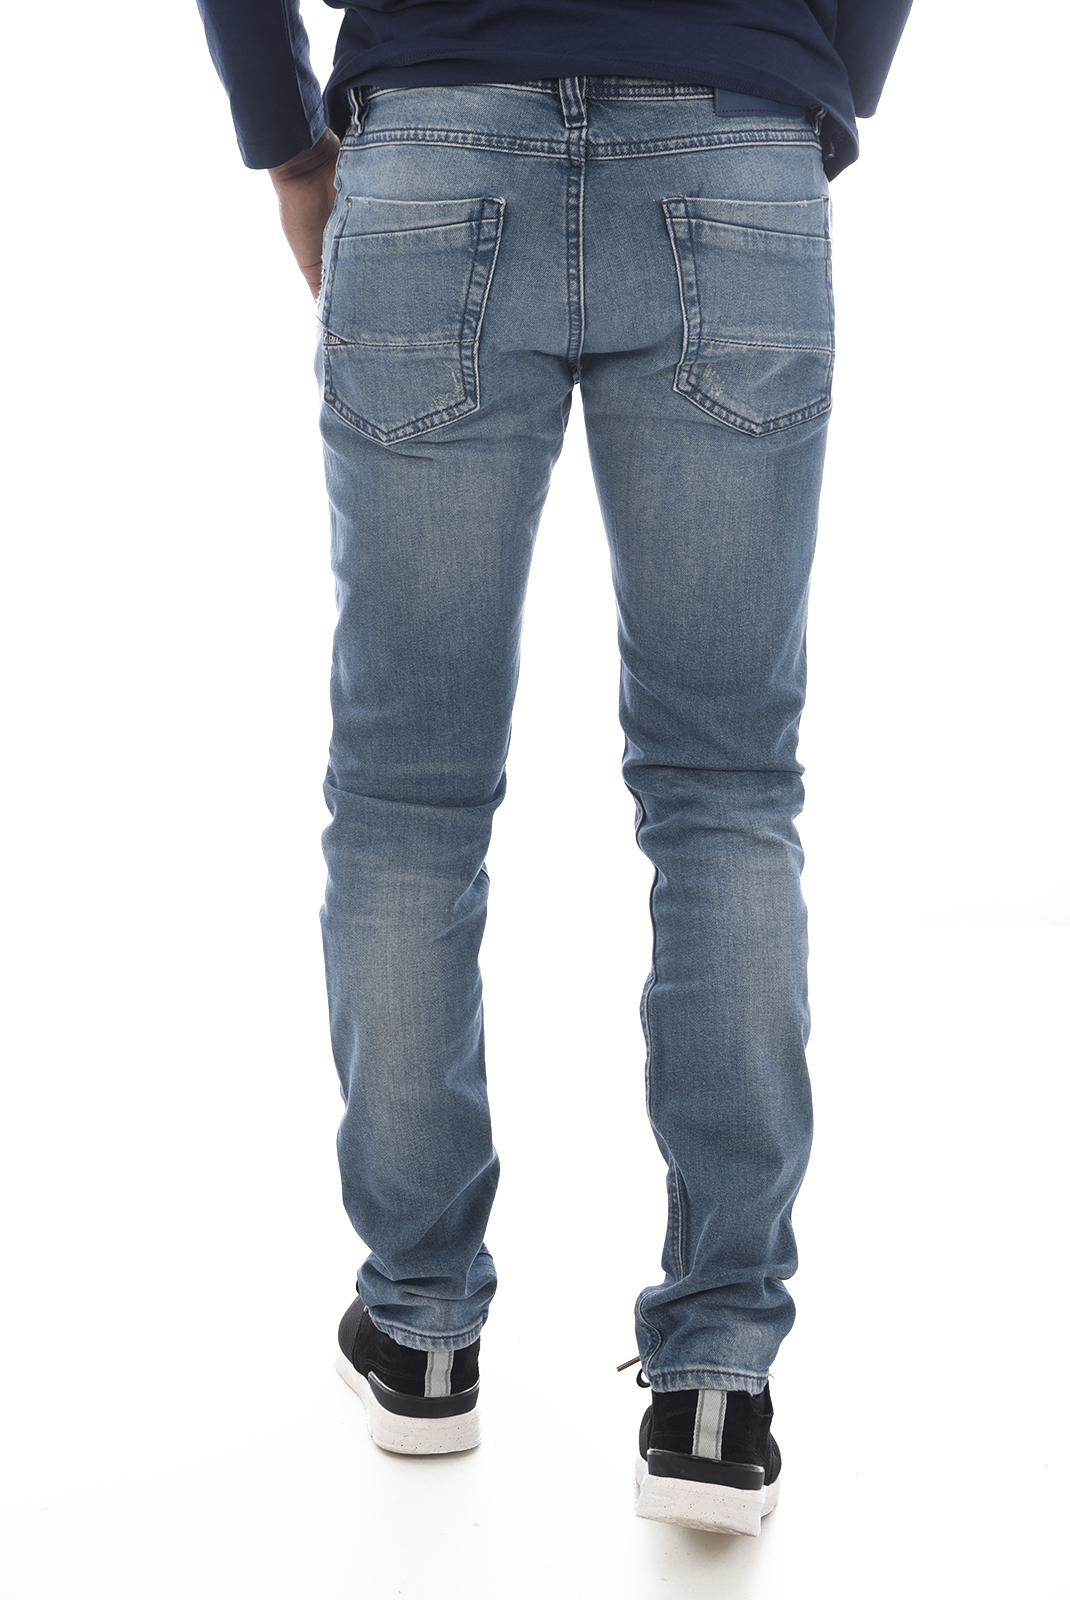 Jeans  Kaporal EZZY KOLLECTOR